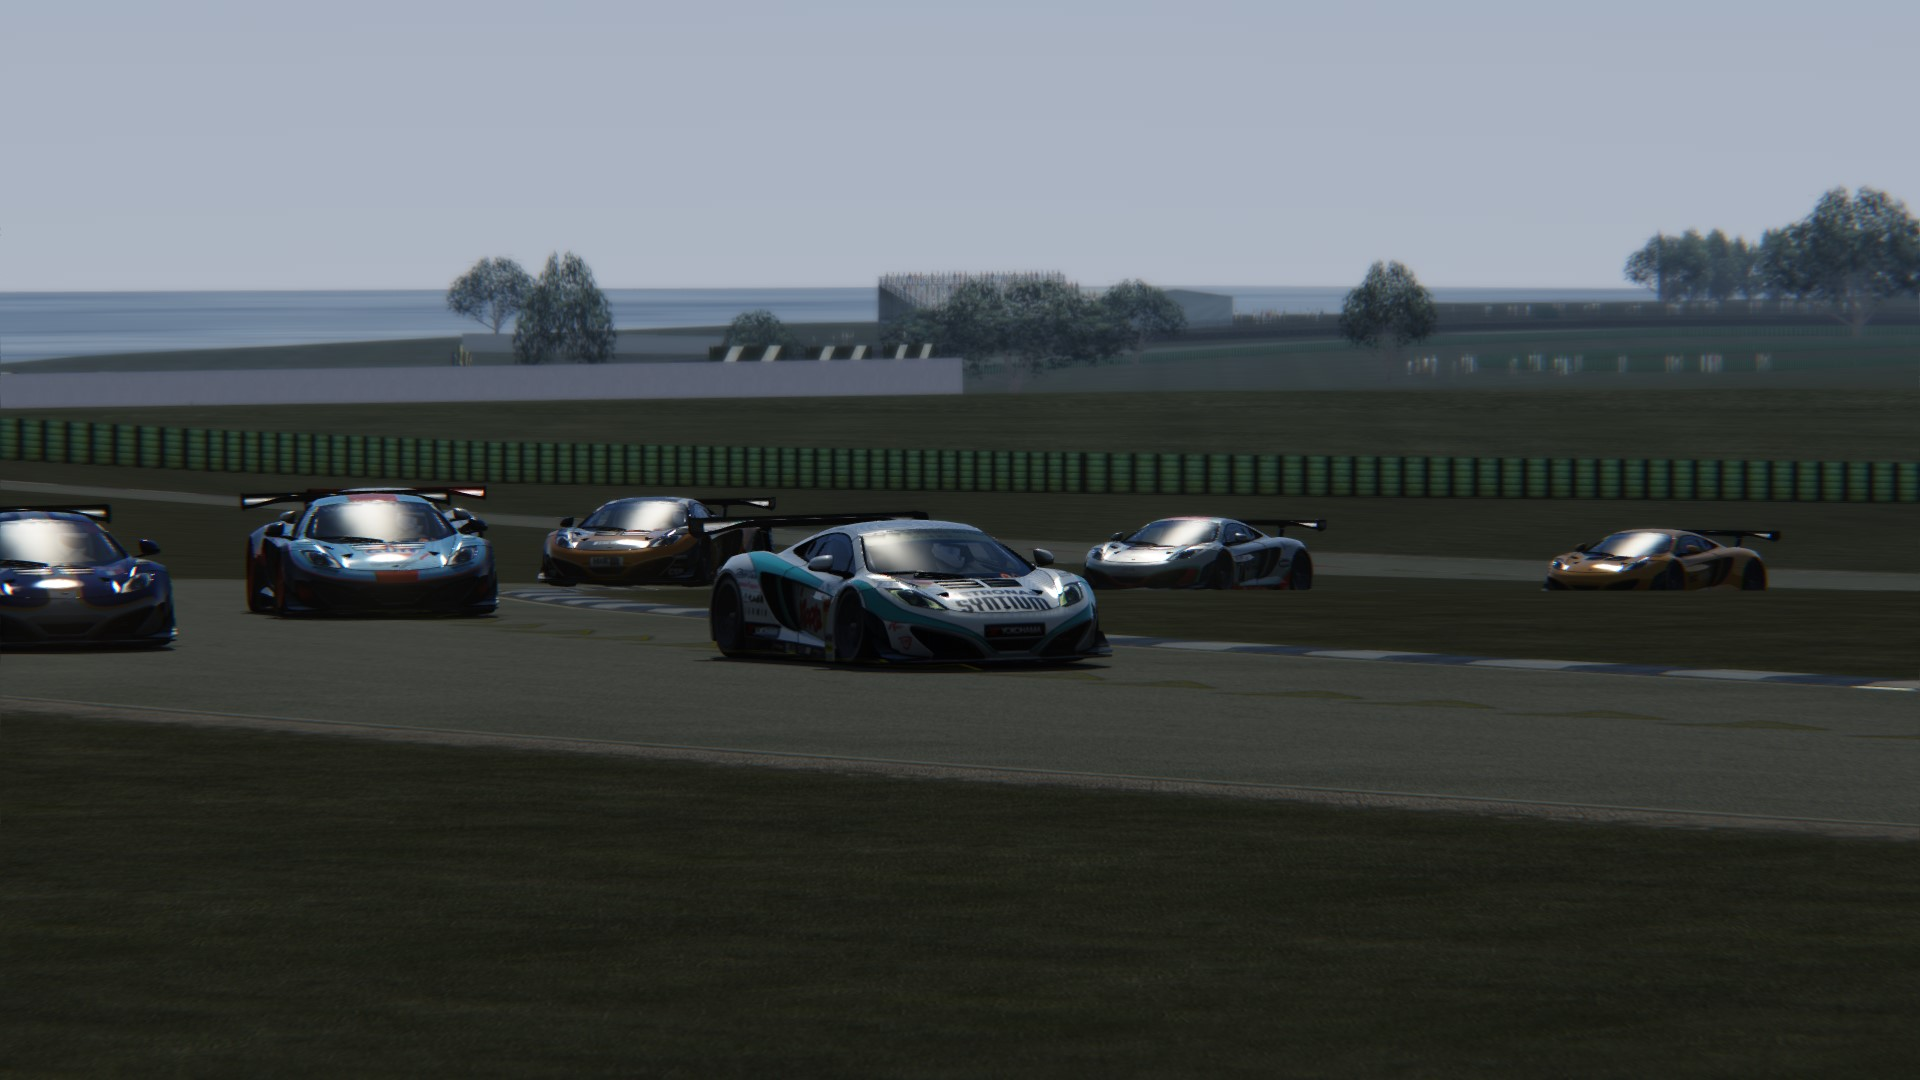 Screenshot_mclaren_mp412c_gt3_phillip_island_circuit_1-7-116-15-11-30.jpg